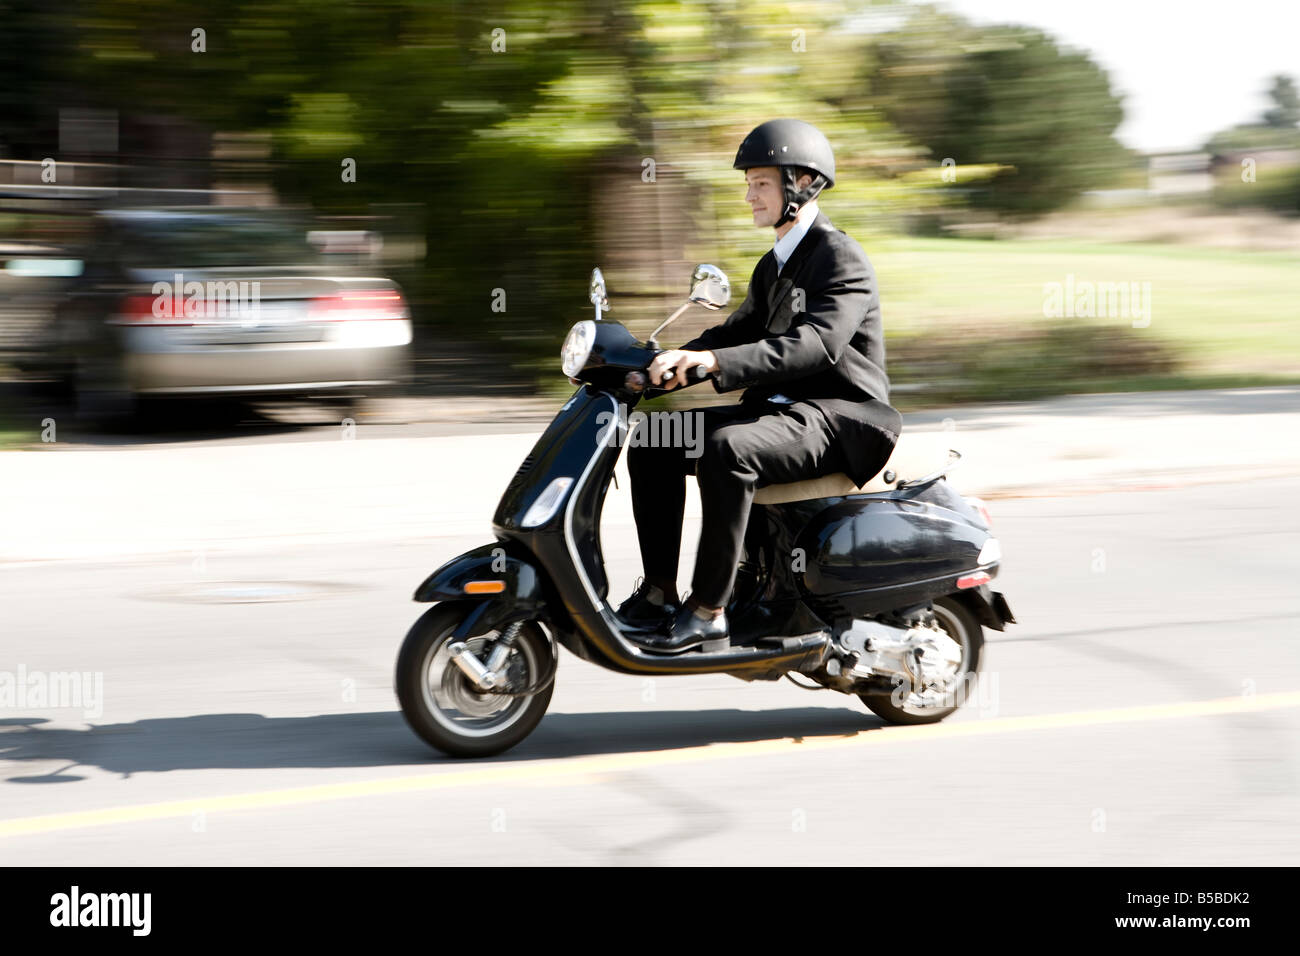 30 year old Caucasian male wearing a business suit riding a scooter downtown Montreal - Stock Image